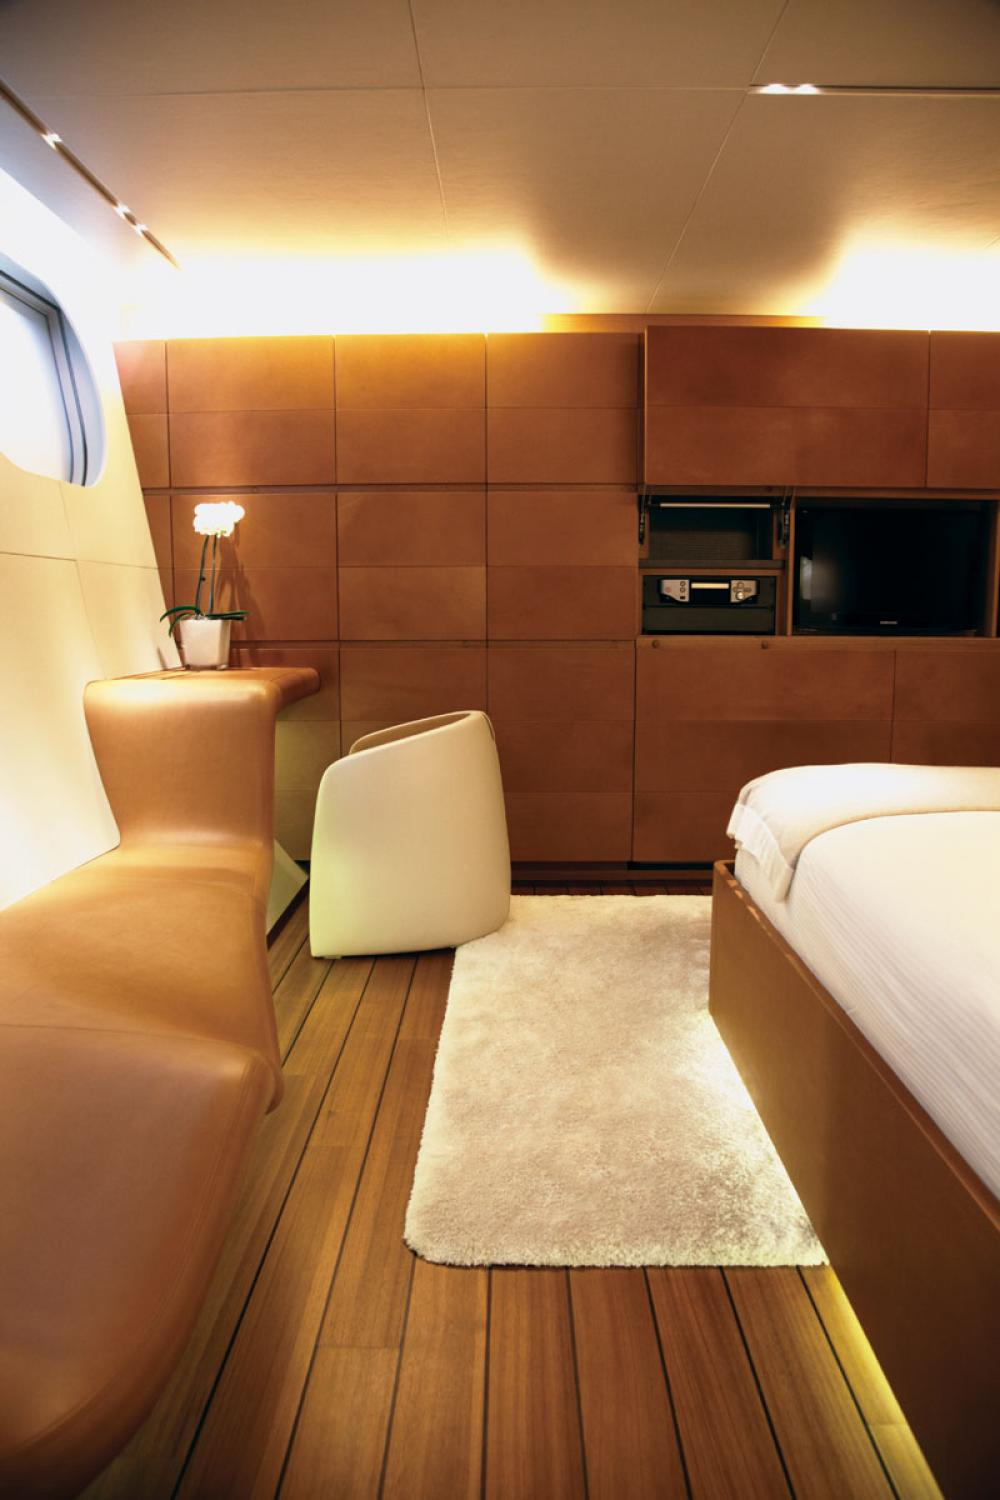 PANTHALASSA - Luxury Sailing Yacht For Charter - 4 DOUBLE CABINS - Img 8 | C&N